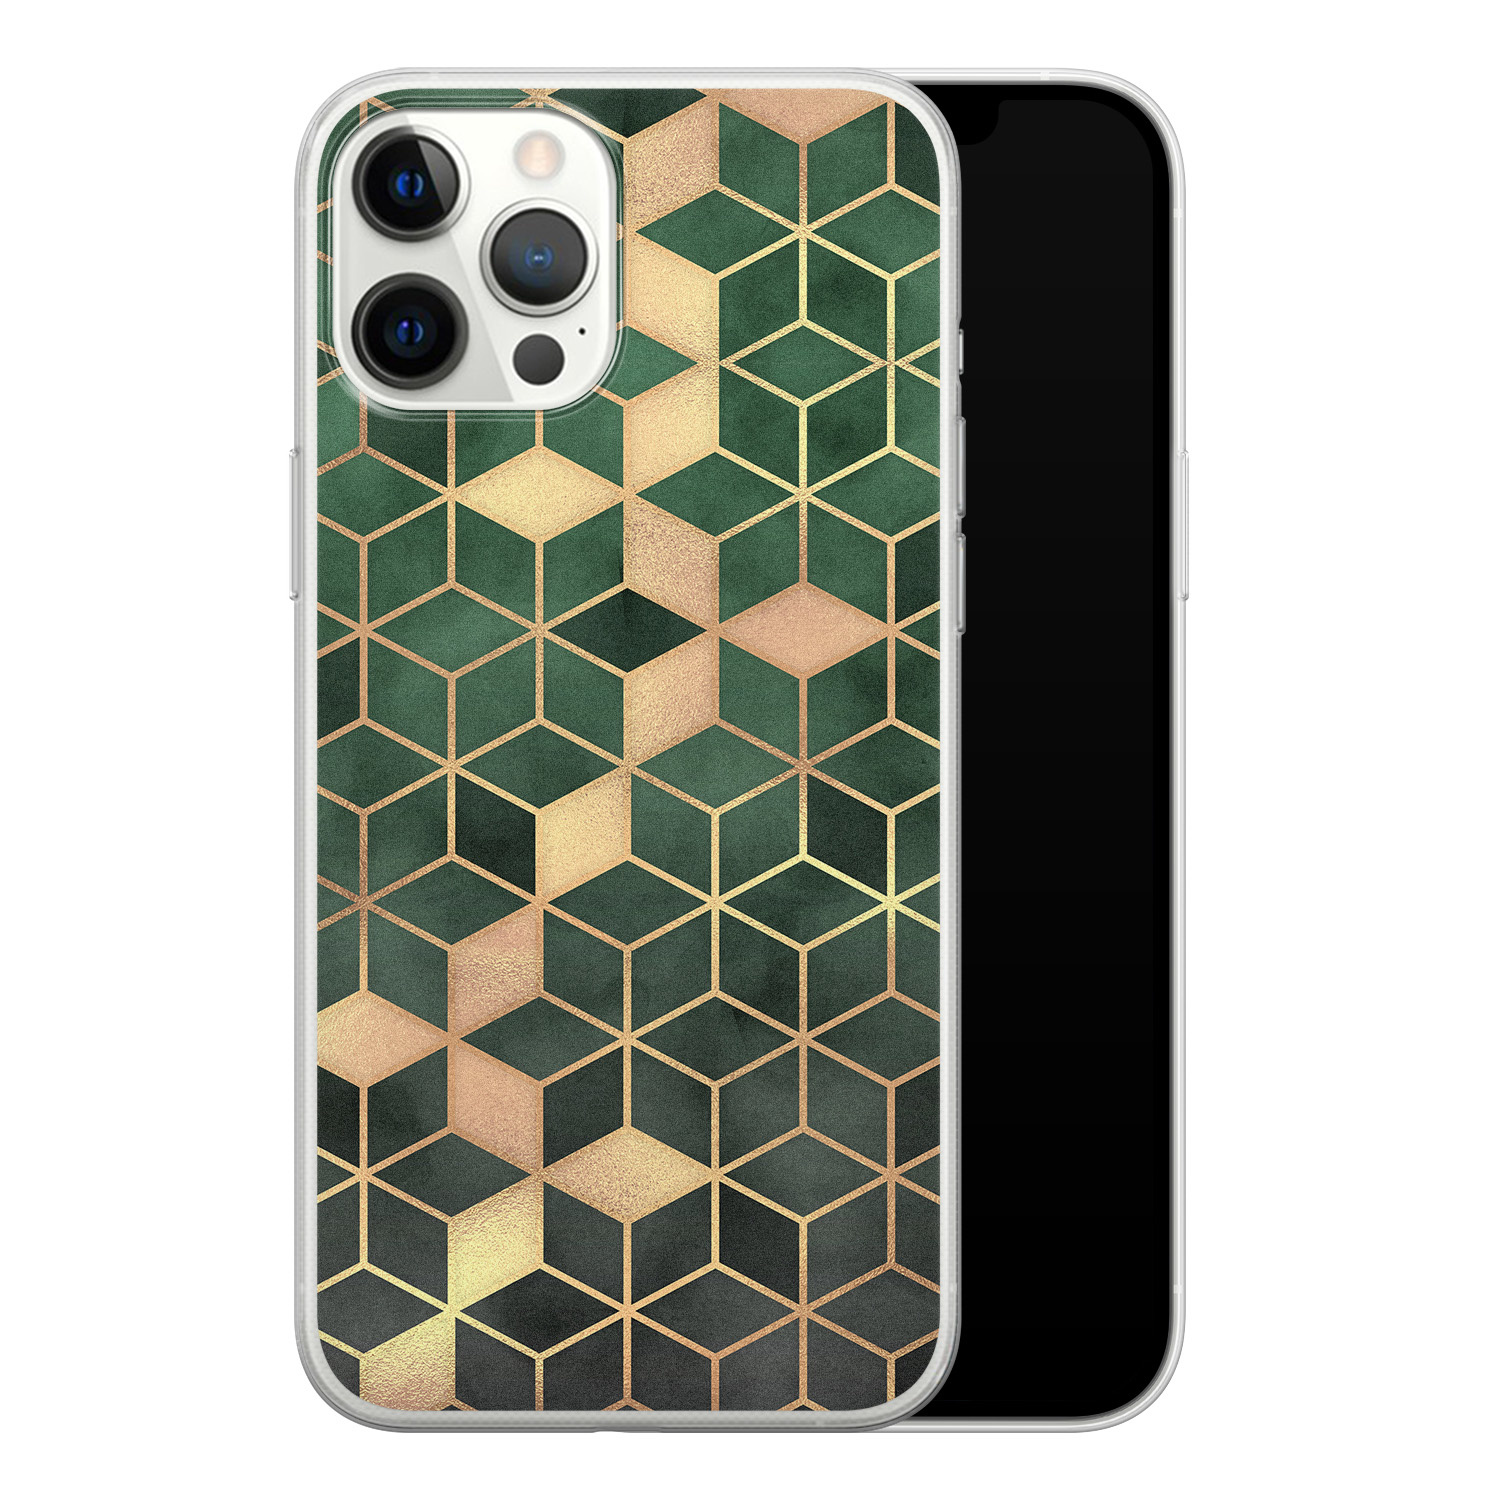 iPhone 12 Pro Max siliconen hoesje - Green cubes